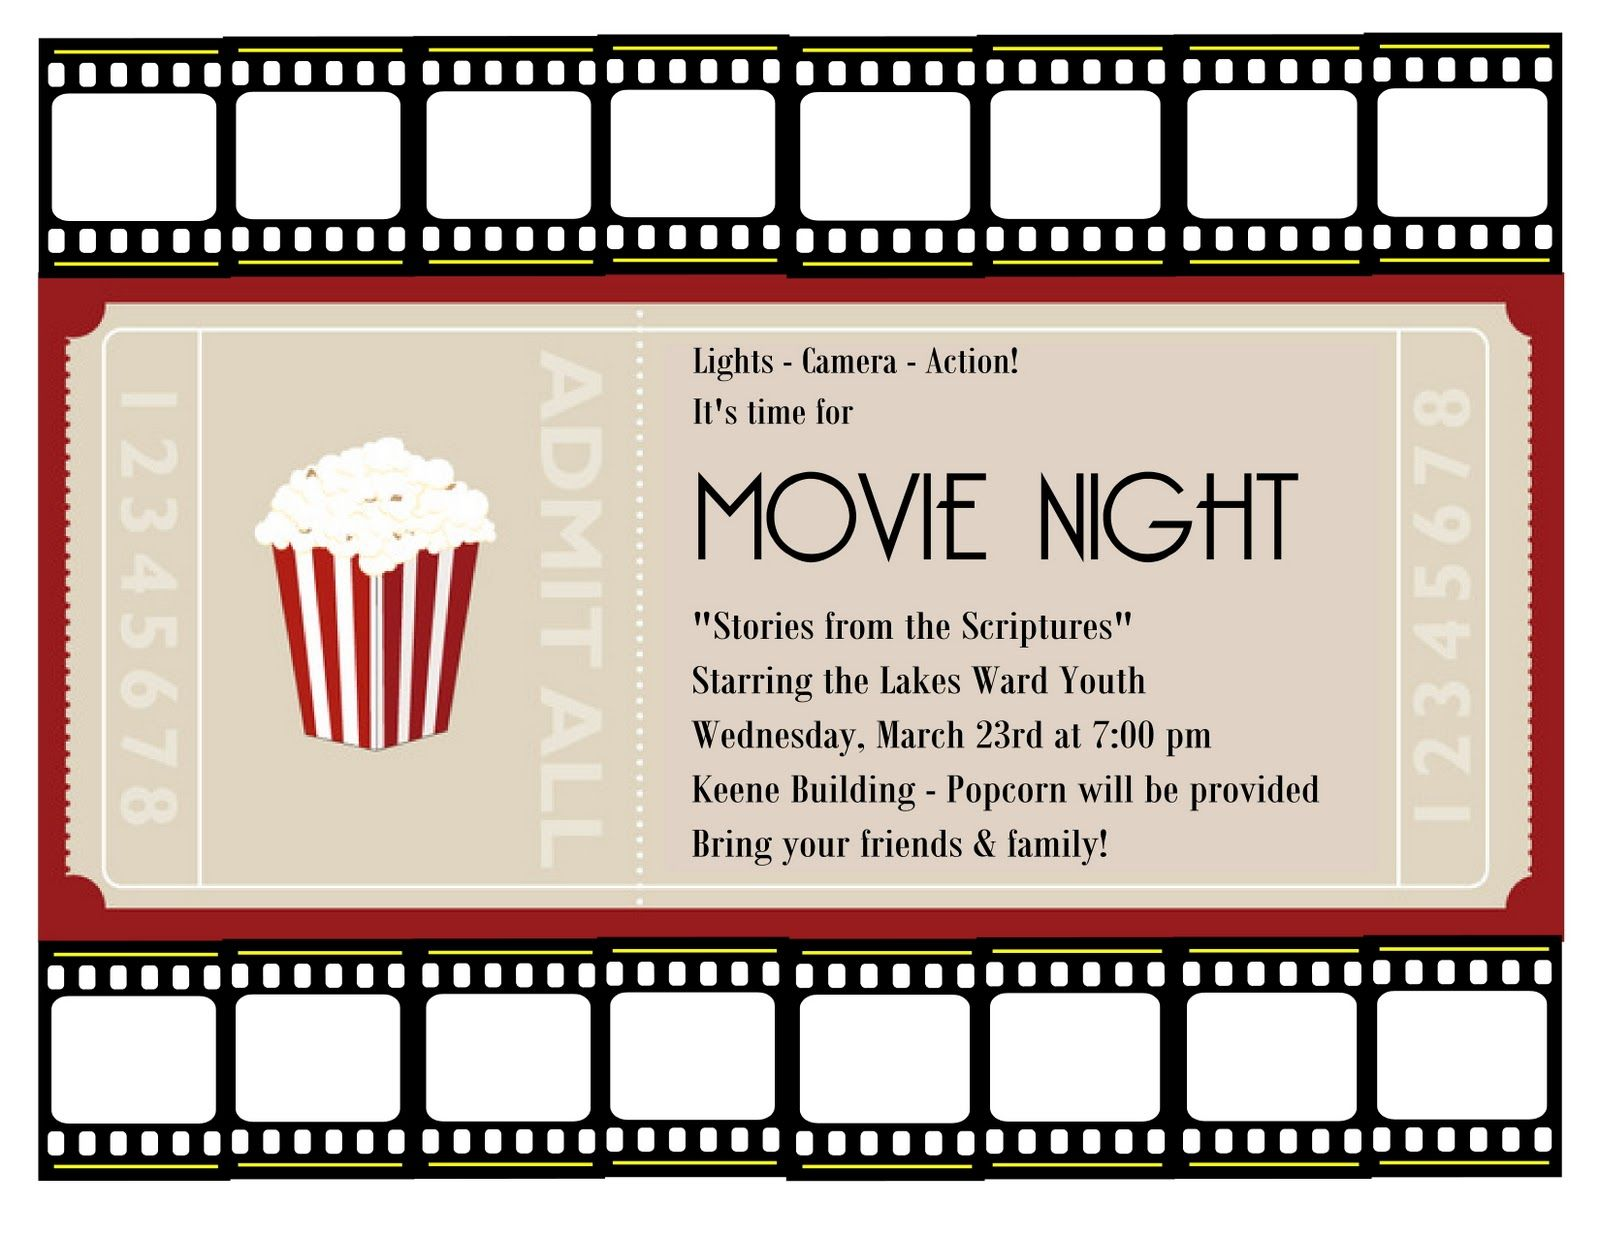 images for movie night poster template hbbwz9w0 poster